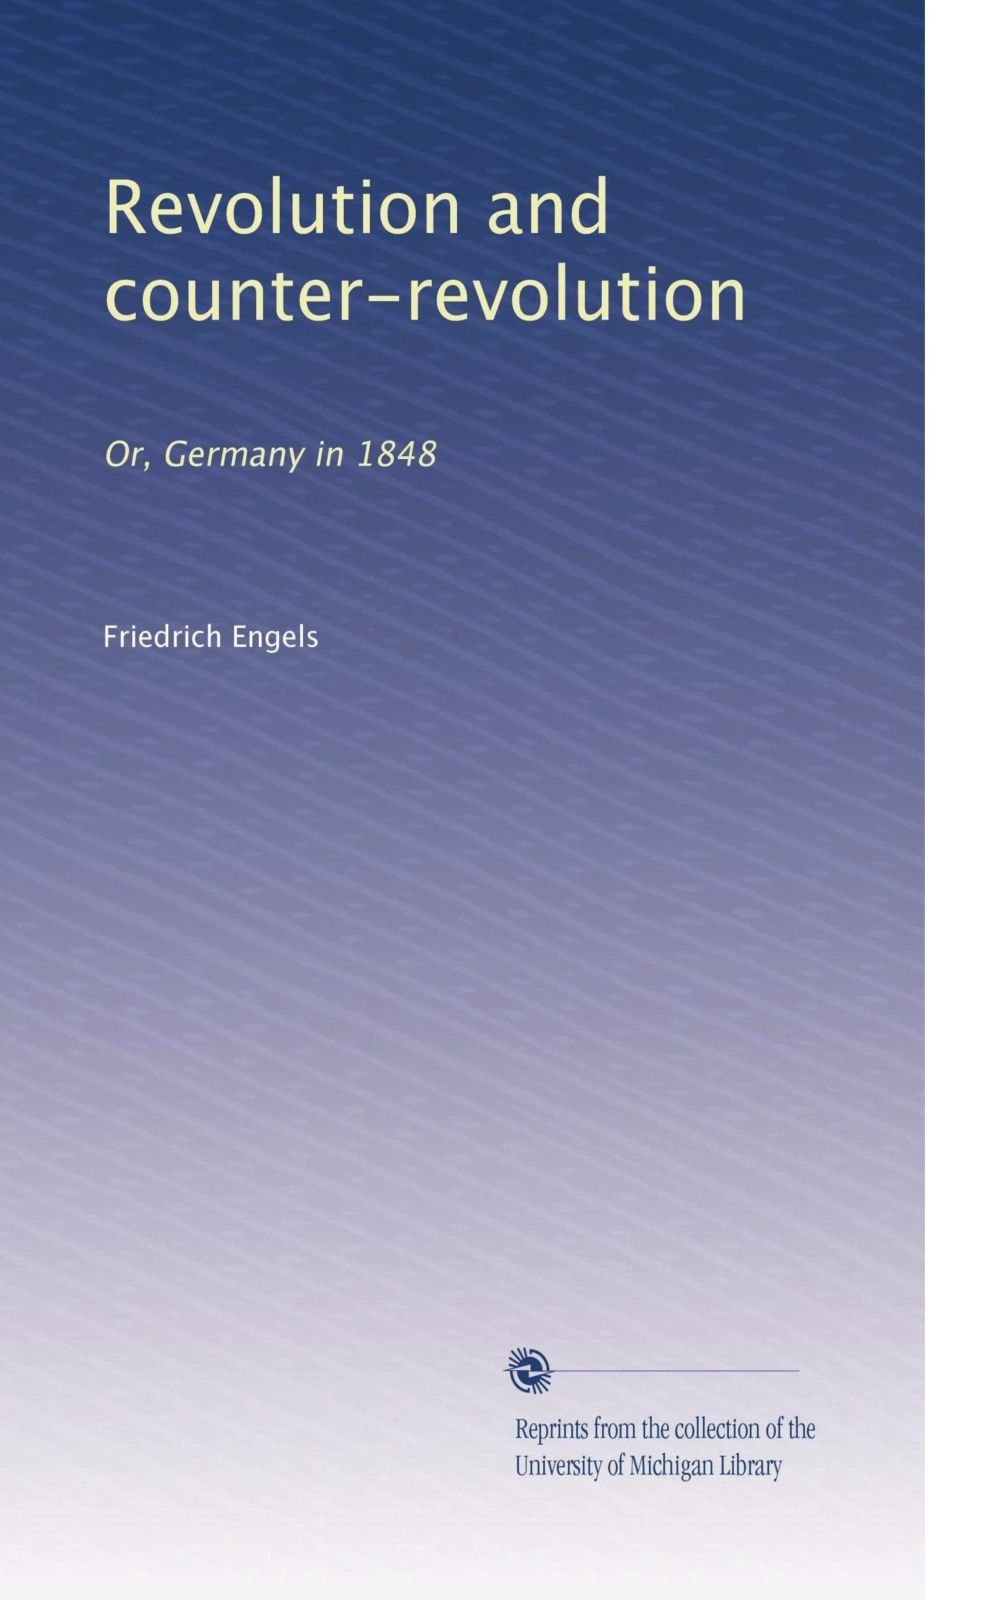 Download Revolution and counter-revolution: Or, Germany in 1848 ebook